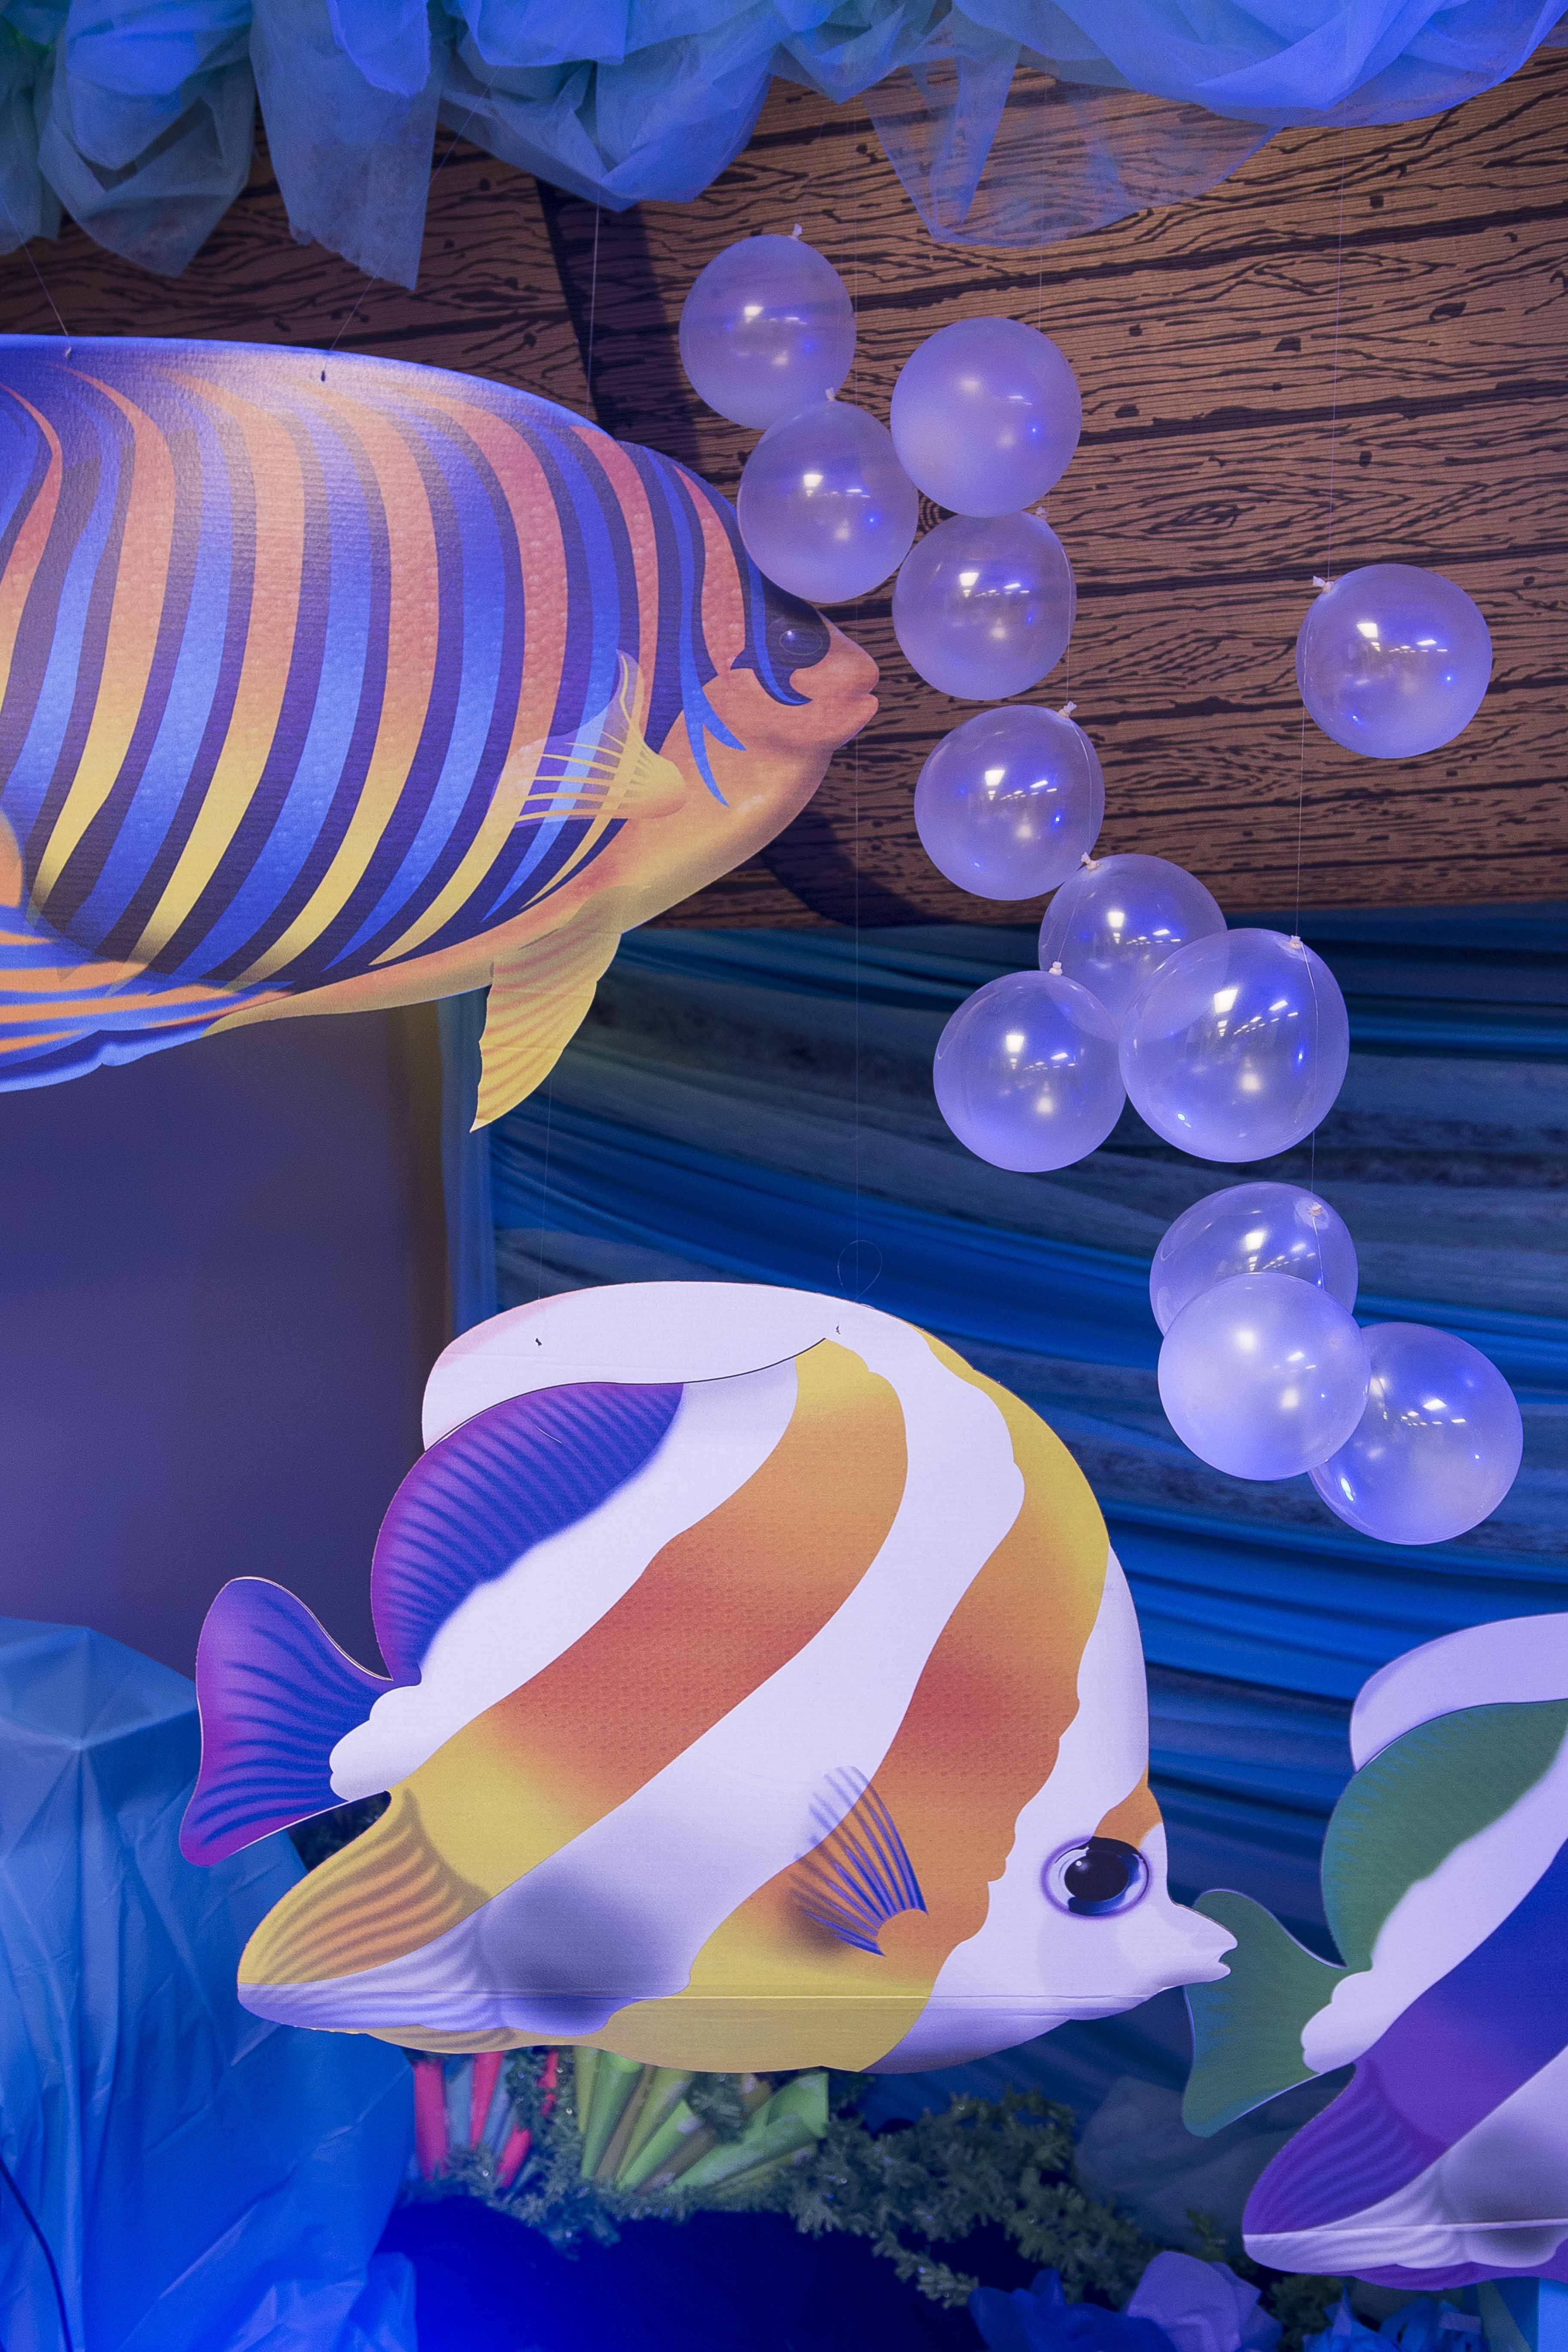 Fish Decorations With Transparent Balloons For Bubbles  Decorating Ideas